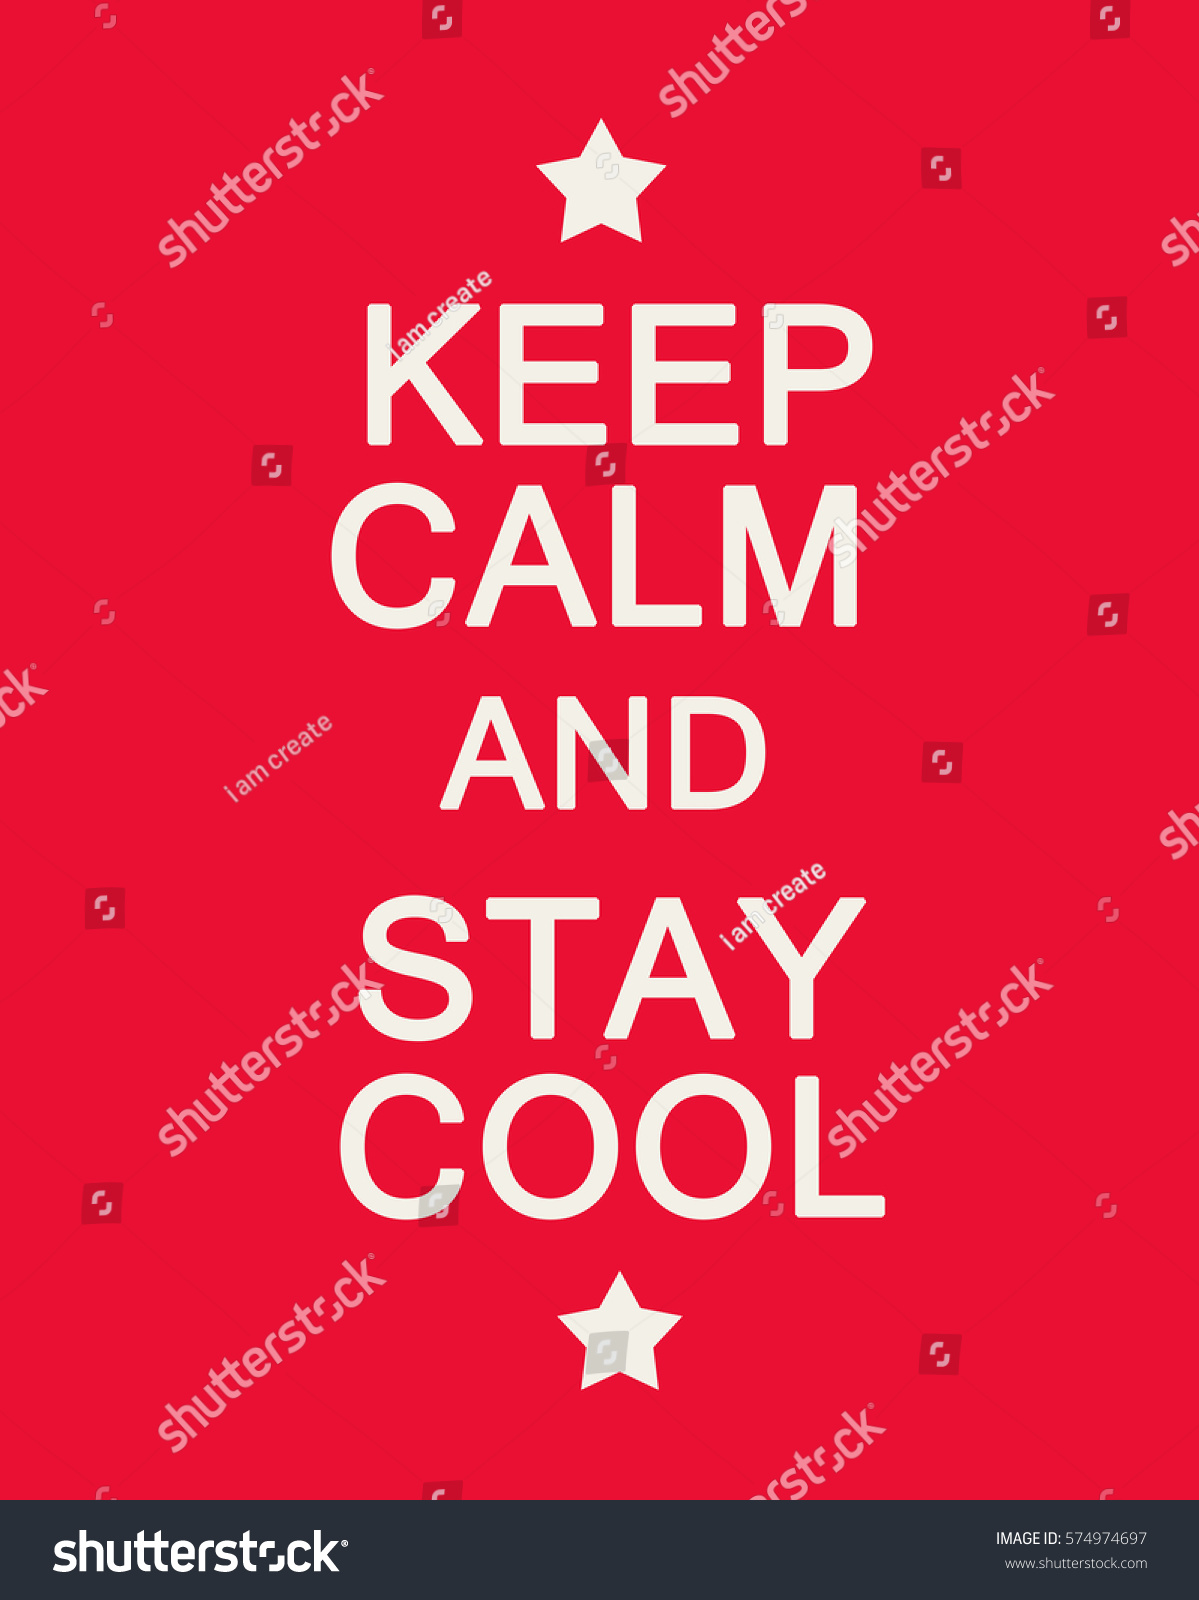 keep calm stay cool on red stock illustration 574974697 shutterstock